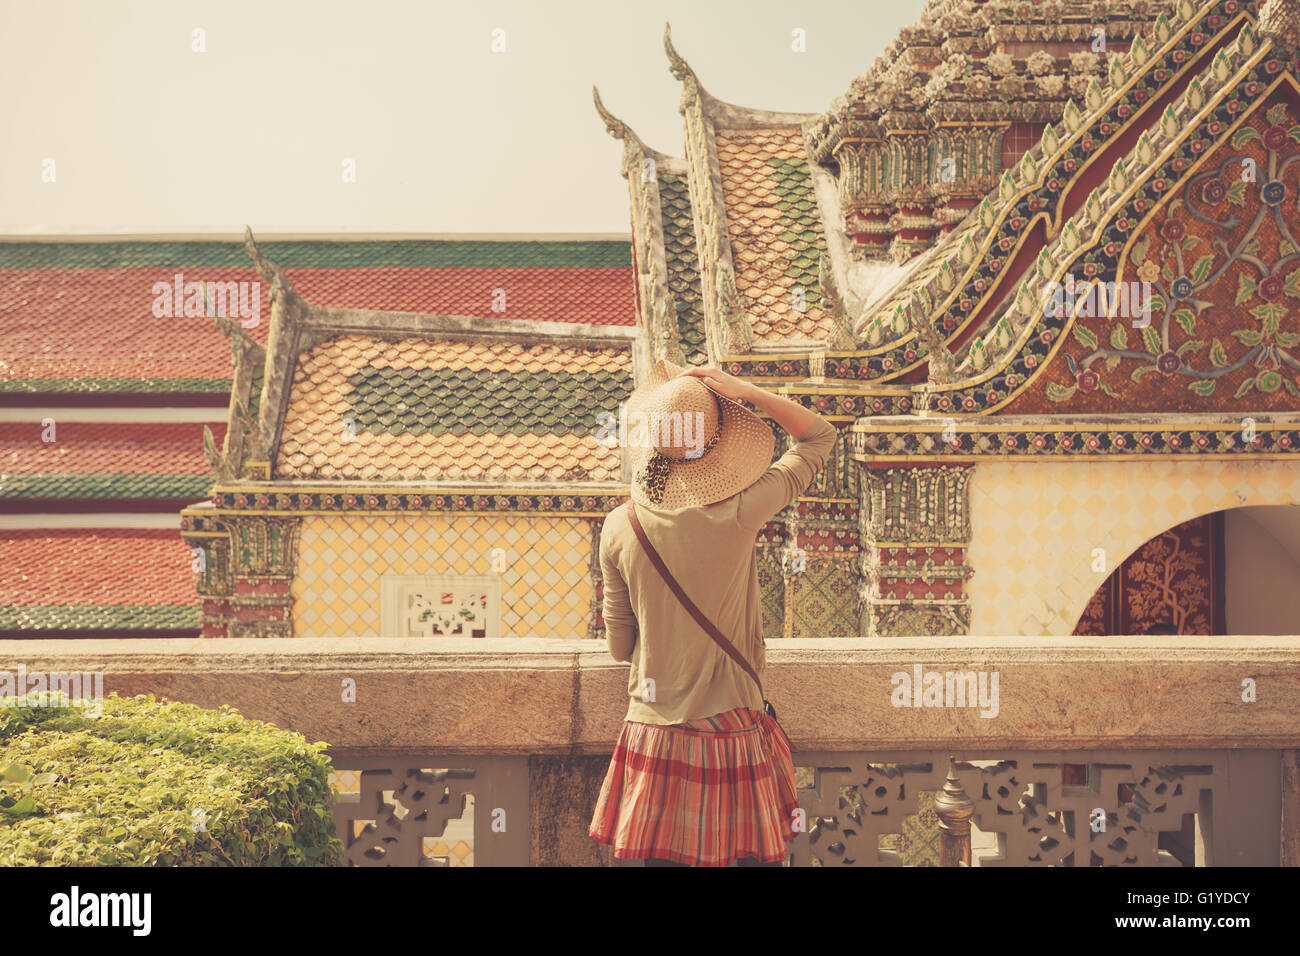 A young woman is exploring a palace in Thailand - Stock Image